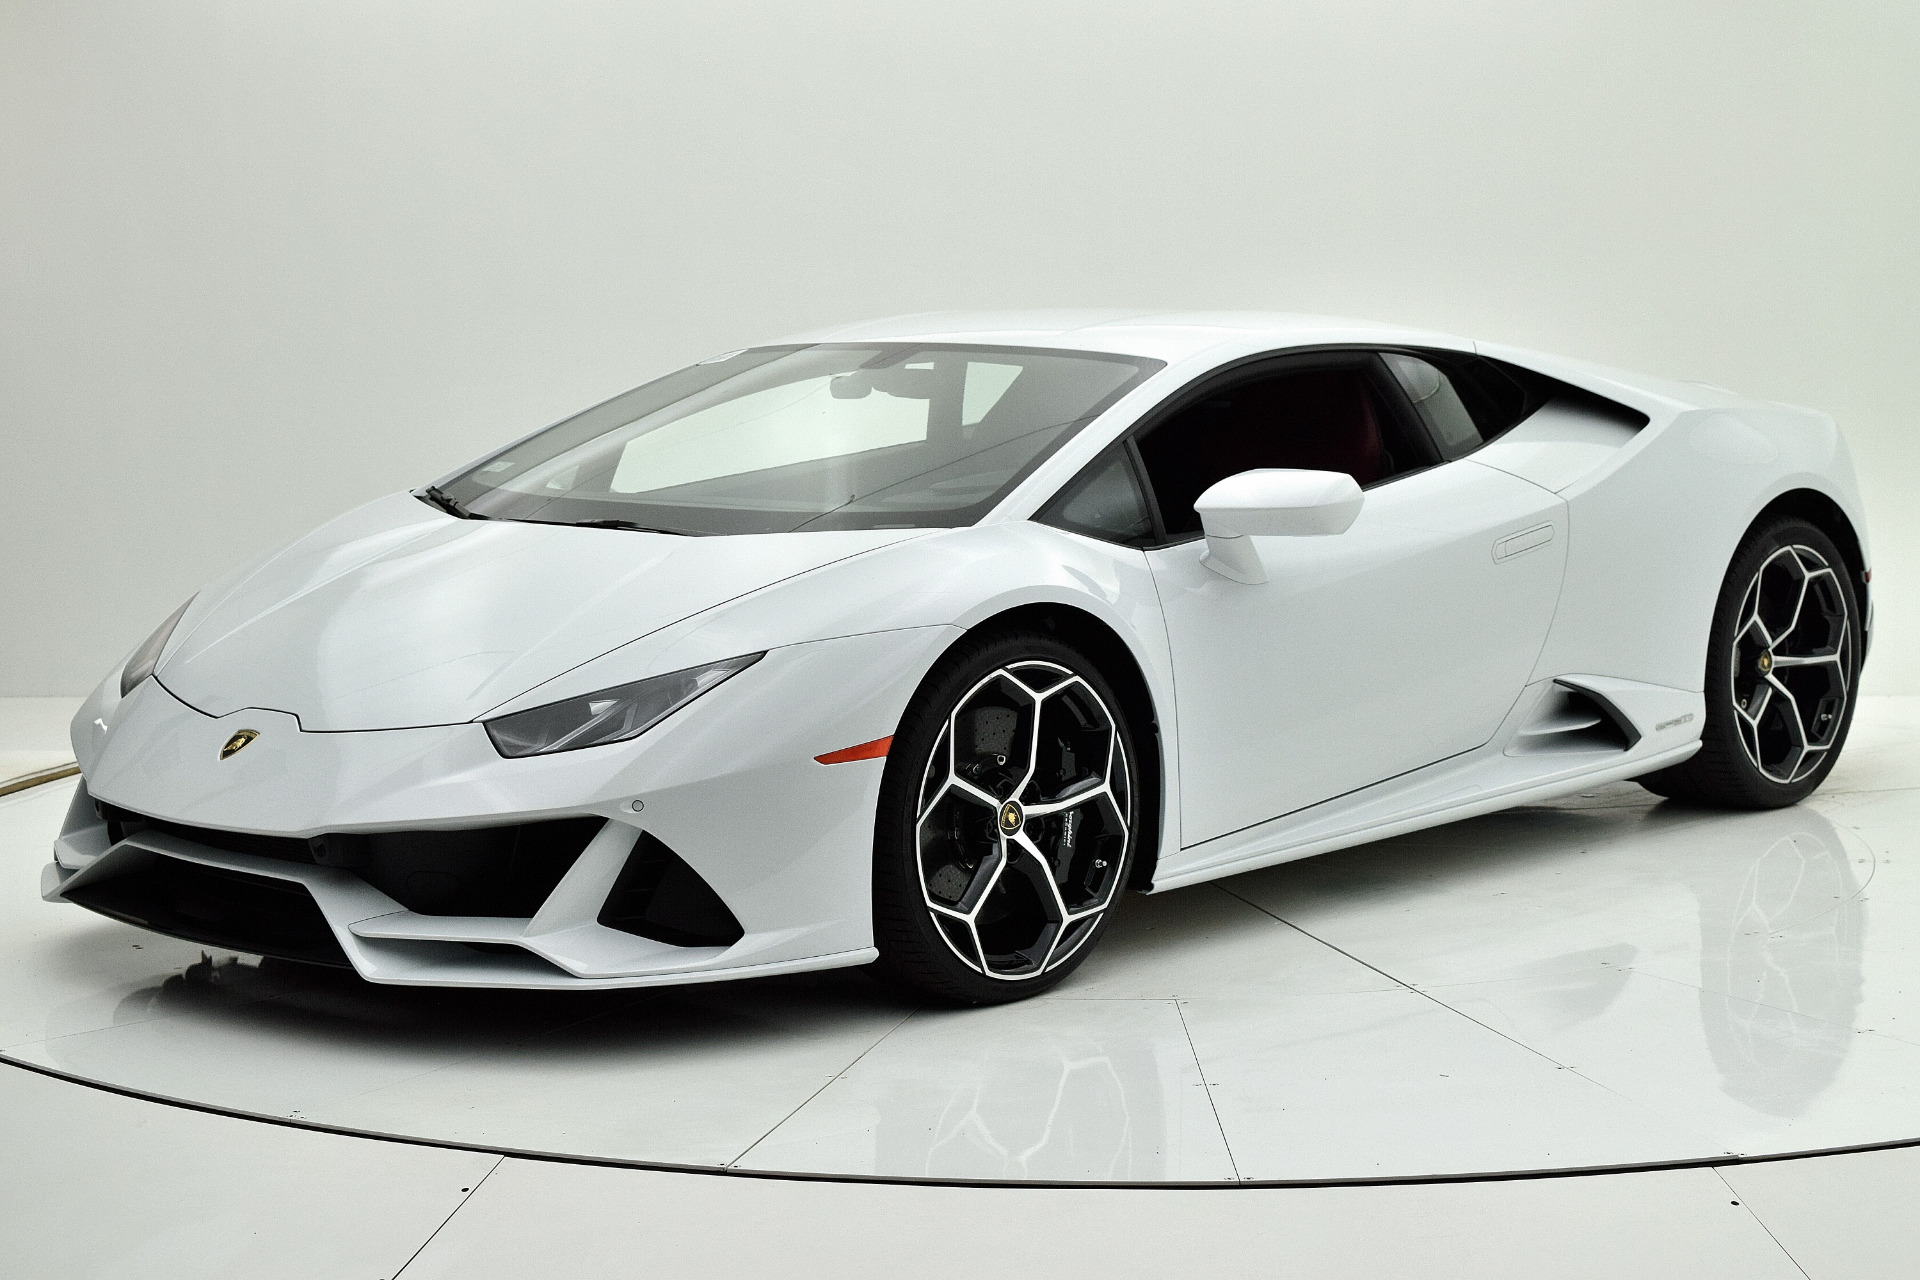 New 2020 Lamborghini Huracan EVO LP 640-4 EVO for sale Sold at F.C. Kerbeck Lamborghini Palmyra N.J. in Palmyra NJ 08065 2